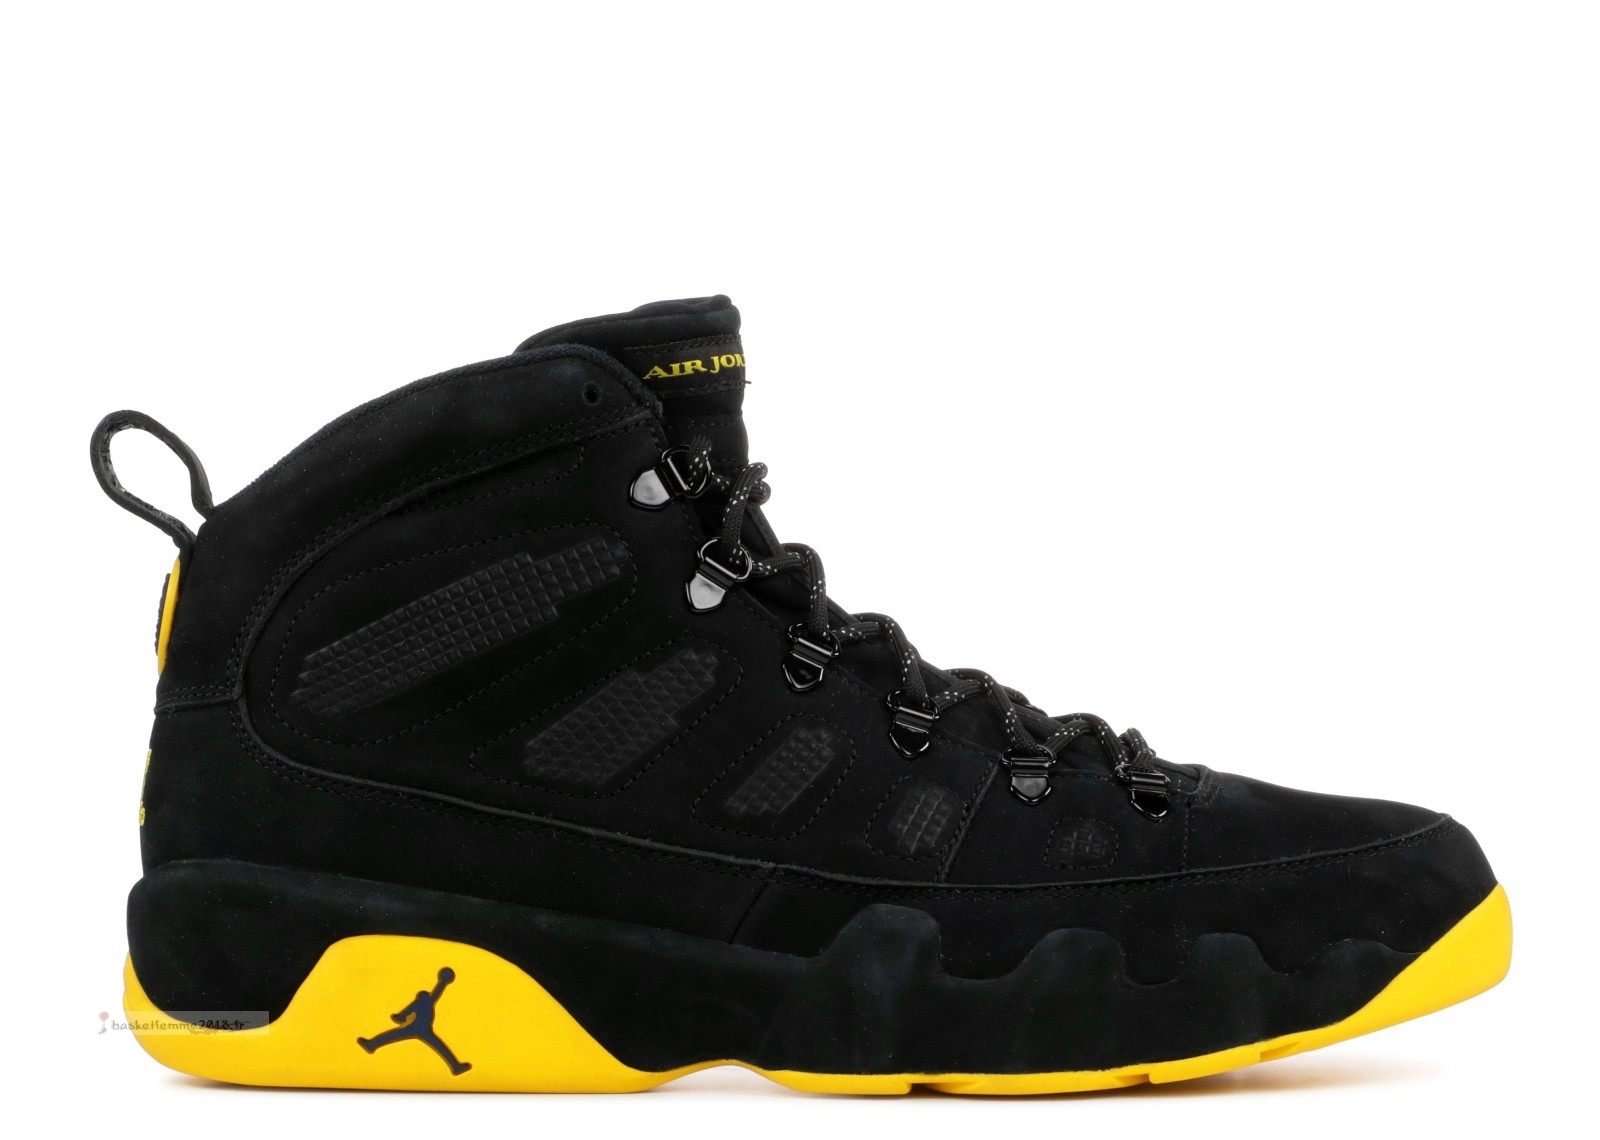 "Air Jordan 9 Retro Boot ""Michigan Psny Pe"" Noir Jaune (mnjdls-266817838) Chaussure de Basket"